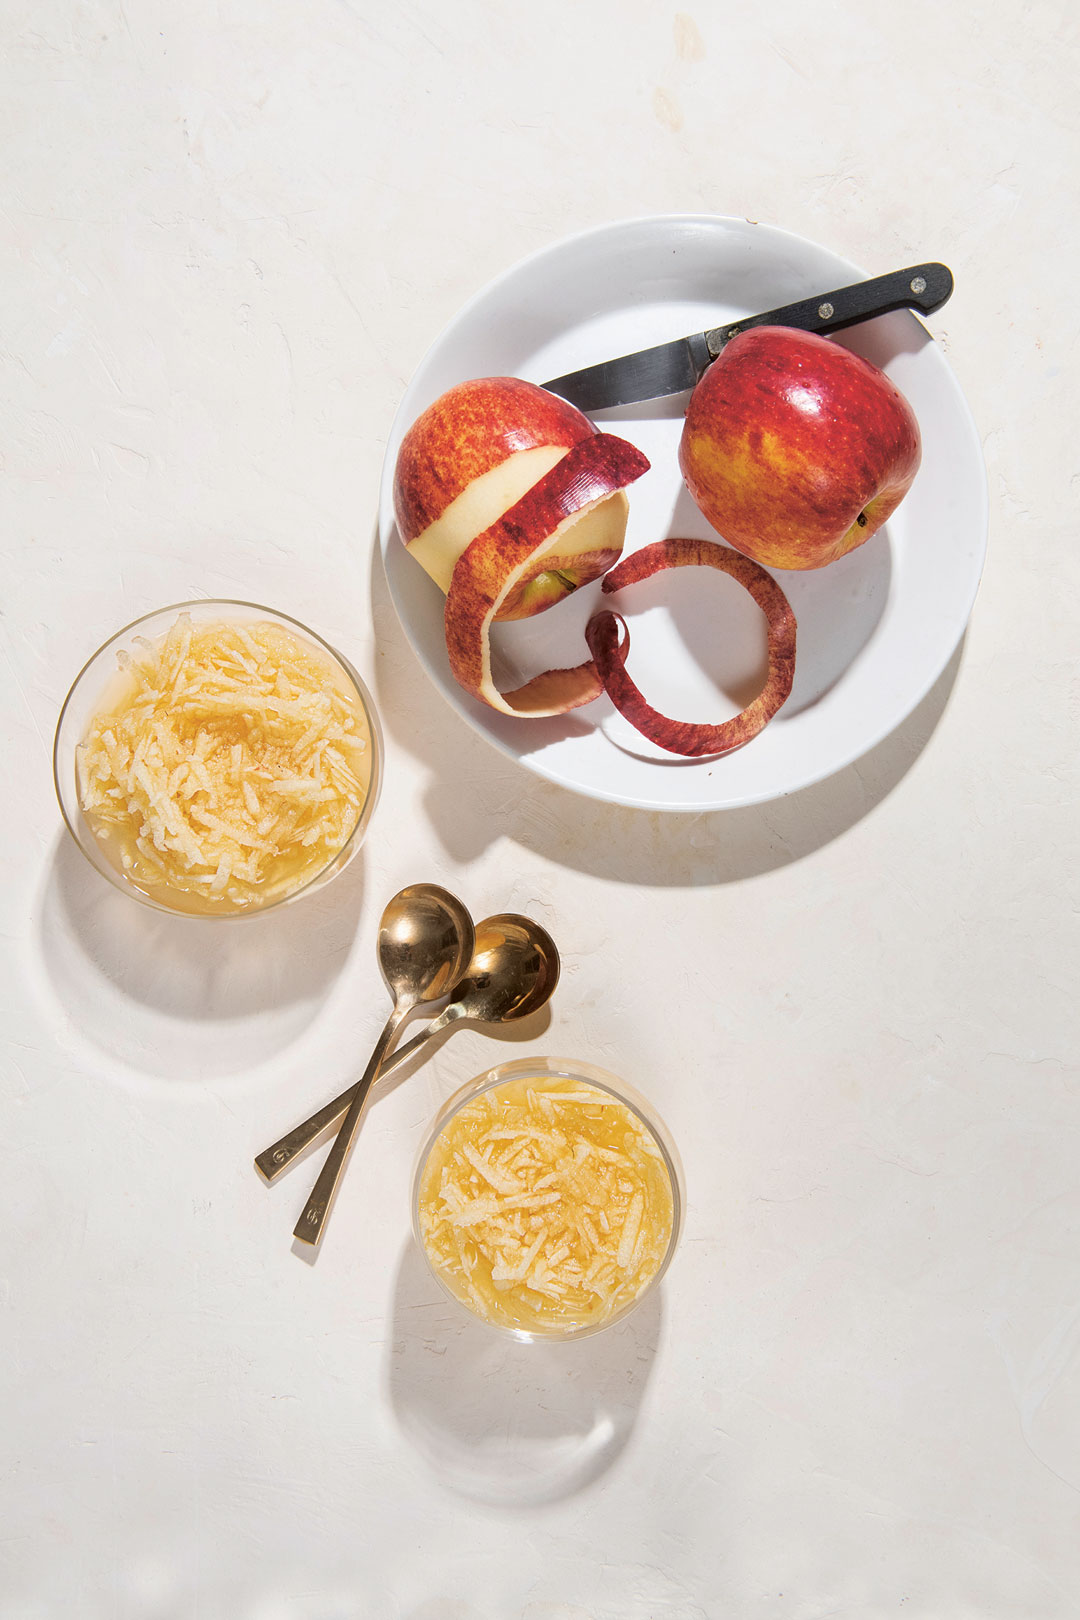 Chilled Apples with Rose Water